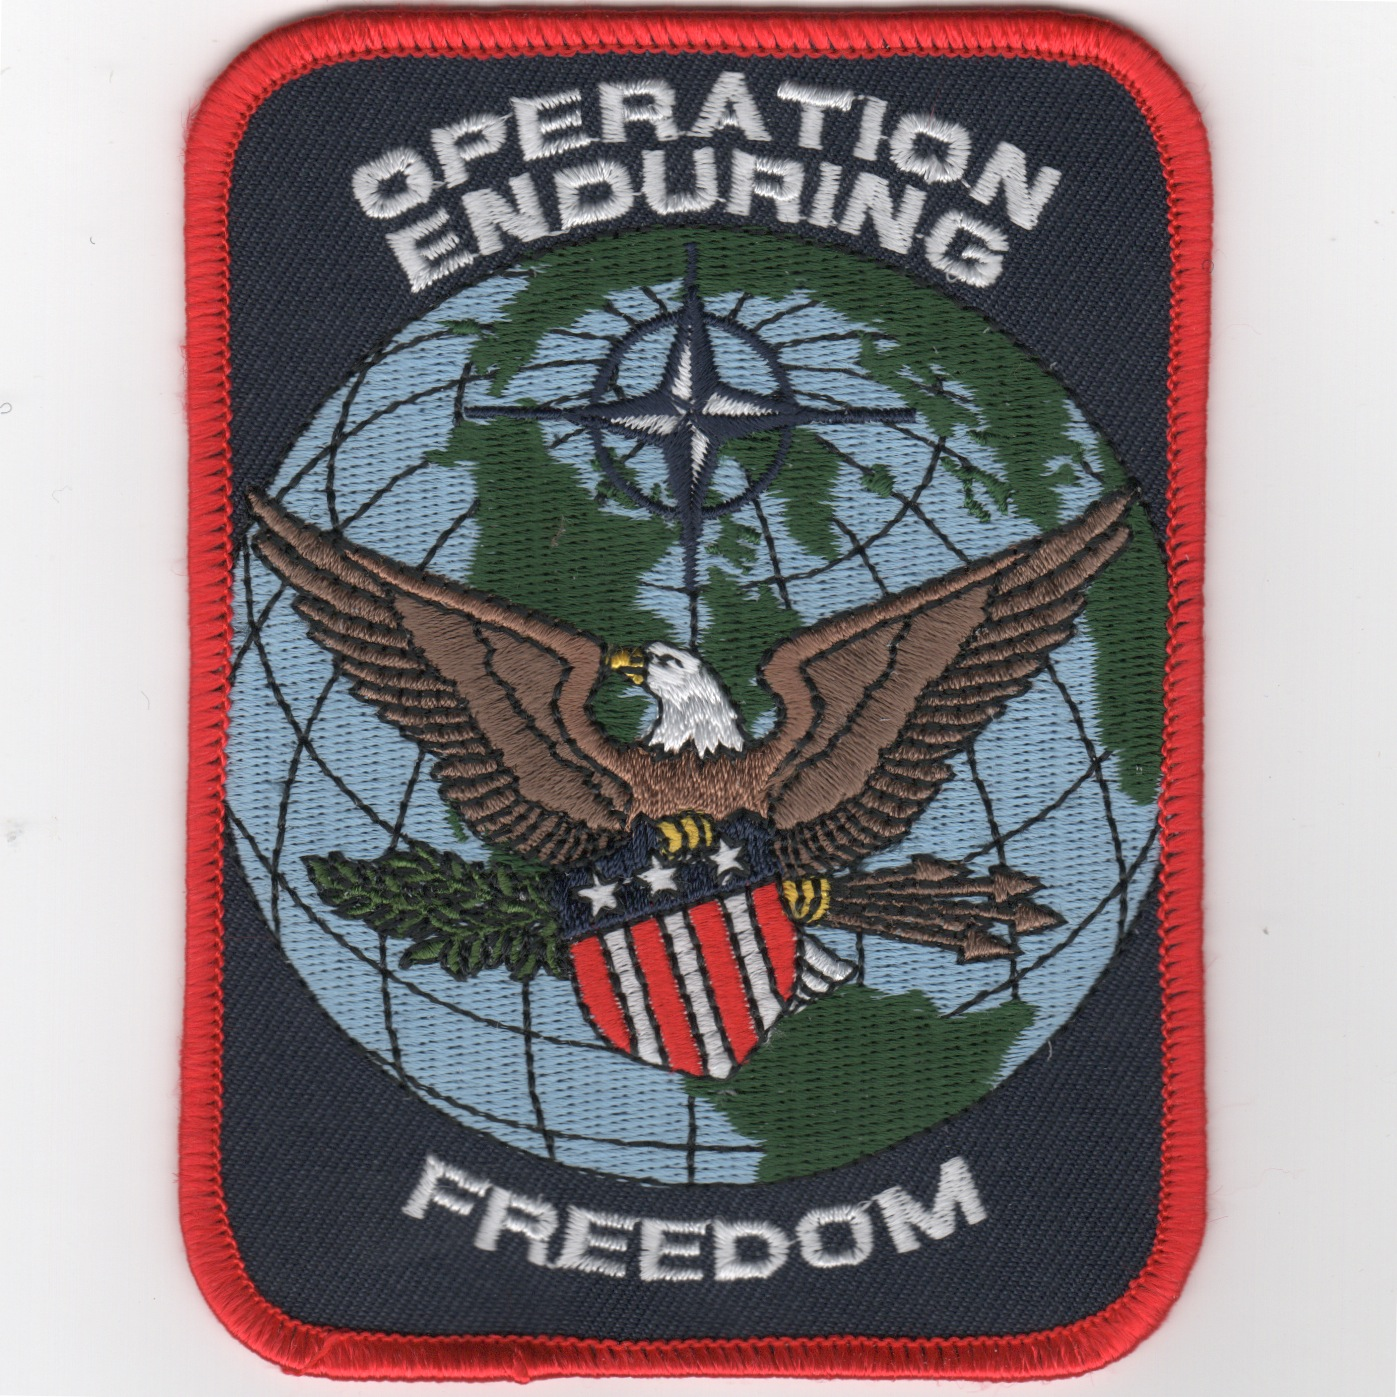 Operation ENDURING FREEDOM (Rect/Black)